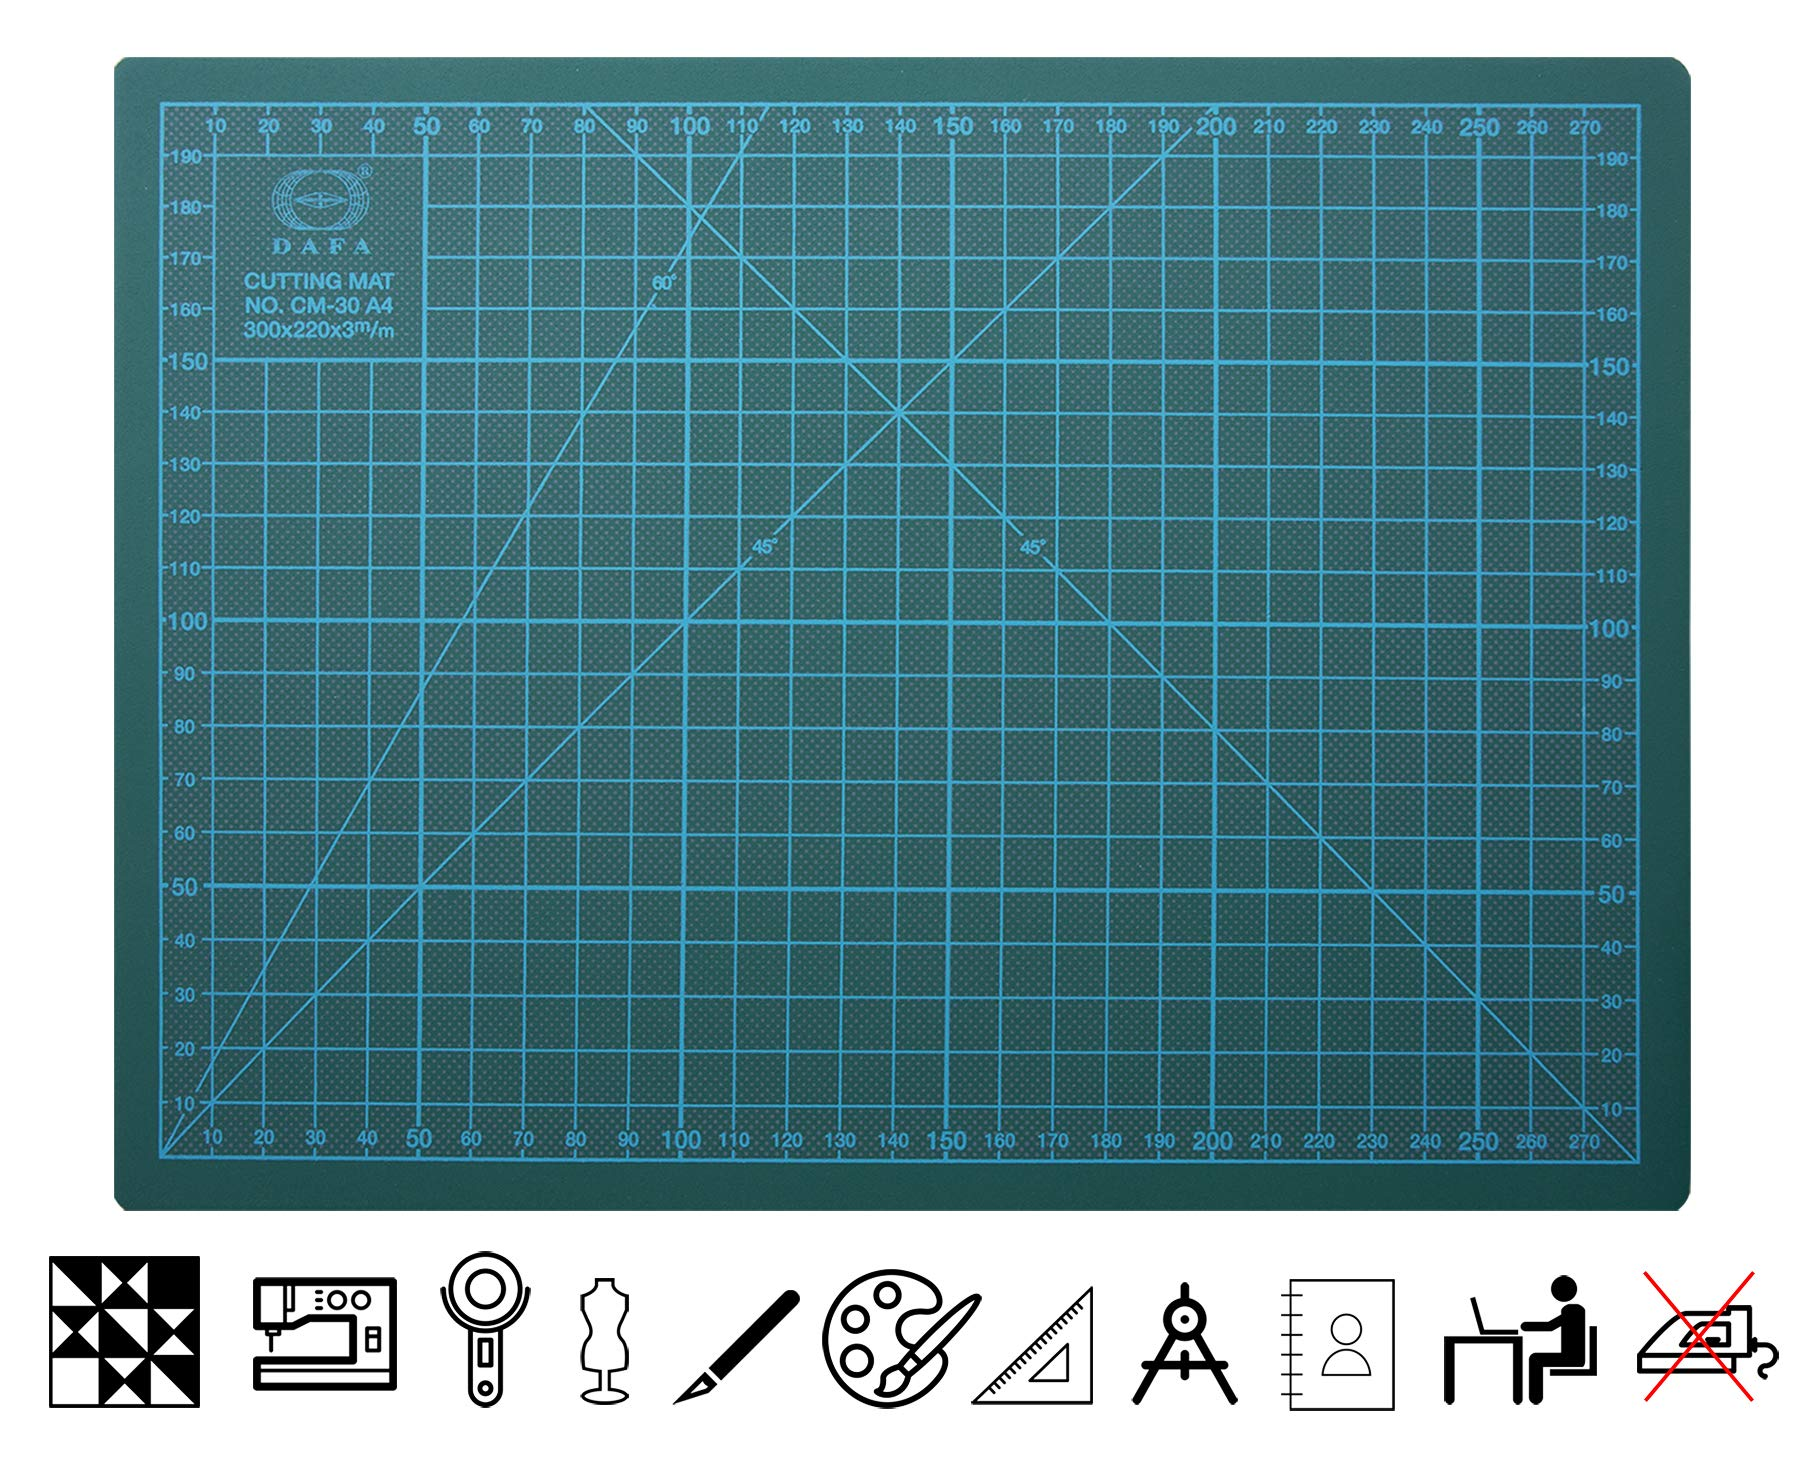 DAFA Professional 36'' x 24'' Self-Healing, Double-Sided Cutting Mat, Rotary Blade Compatible, (36x24), (24x18), (18x12), (12x9) Sizes, for Sewing, Quilting, Arts & Crafts by DAFA (Image #2)